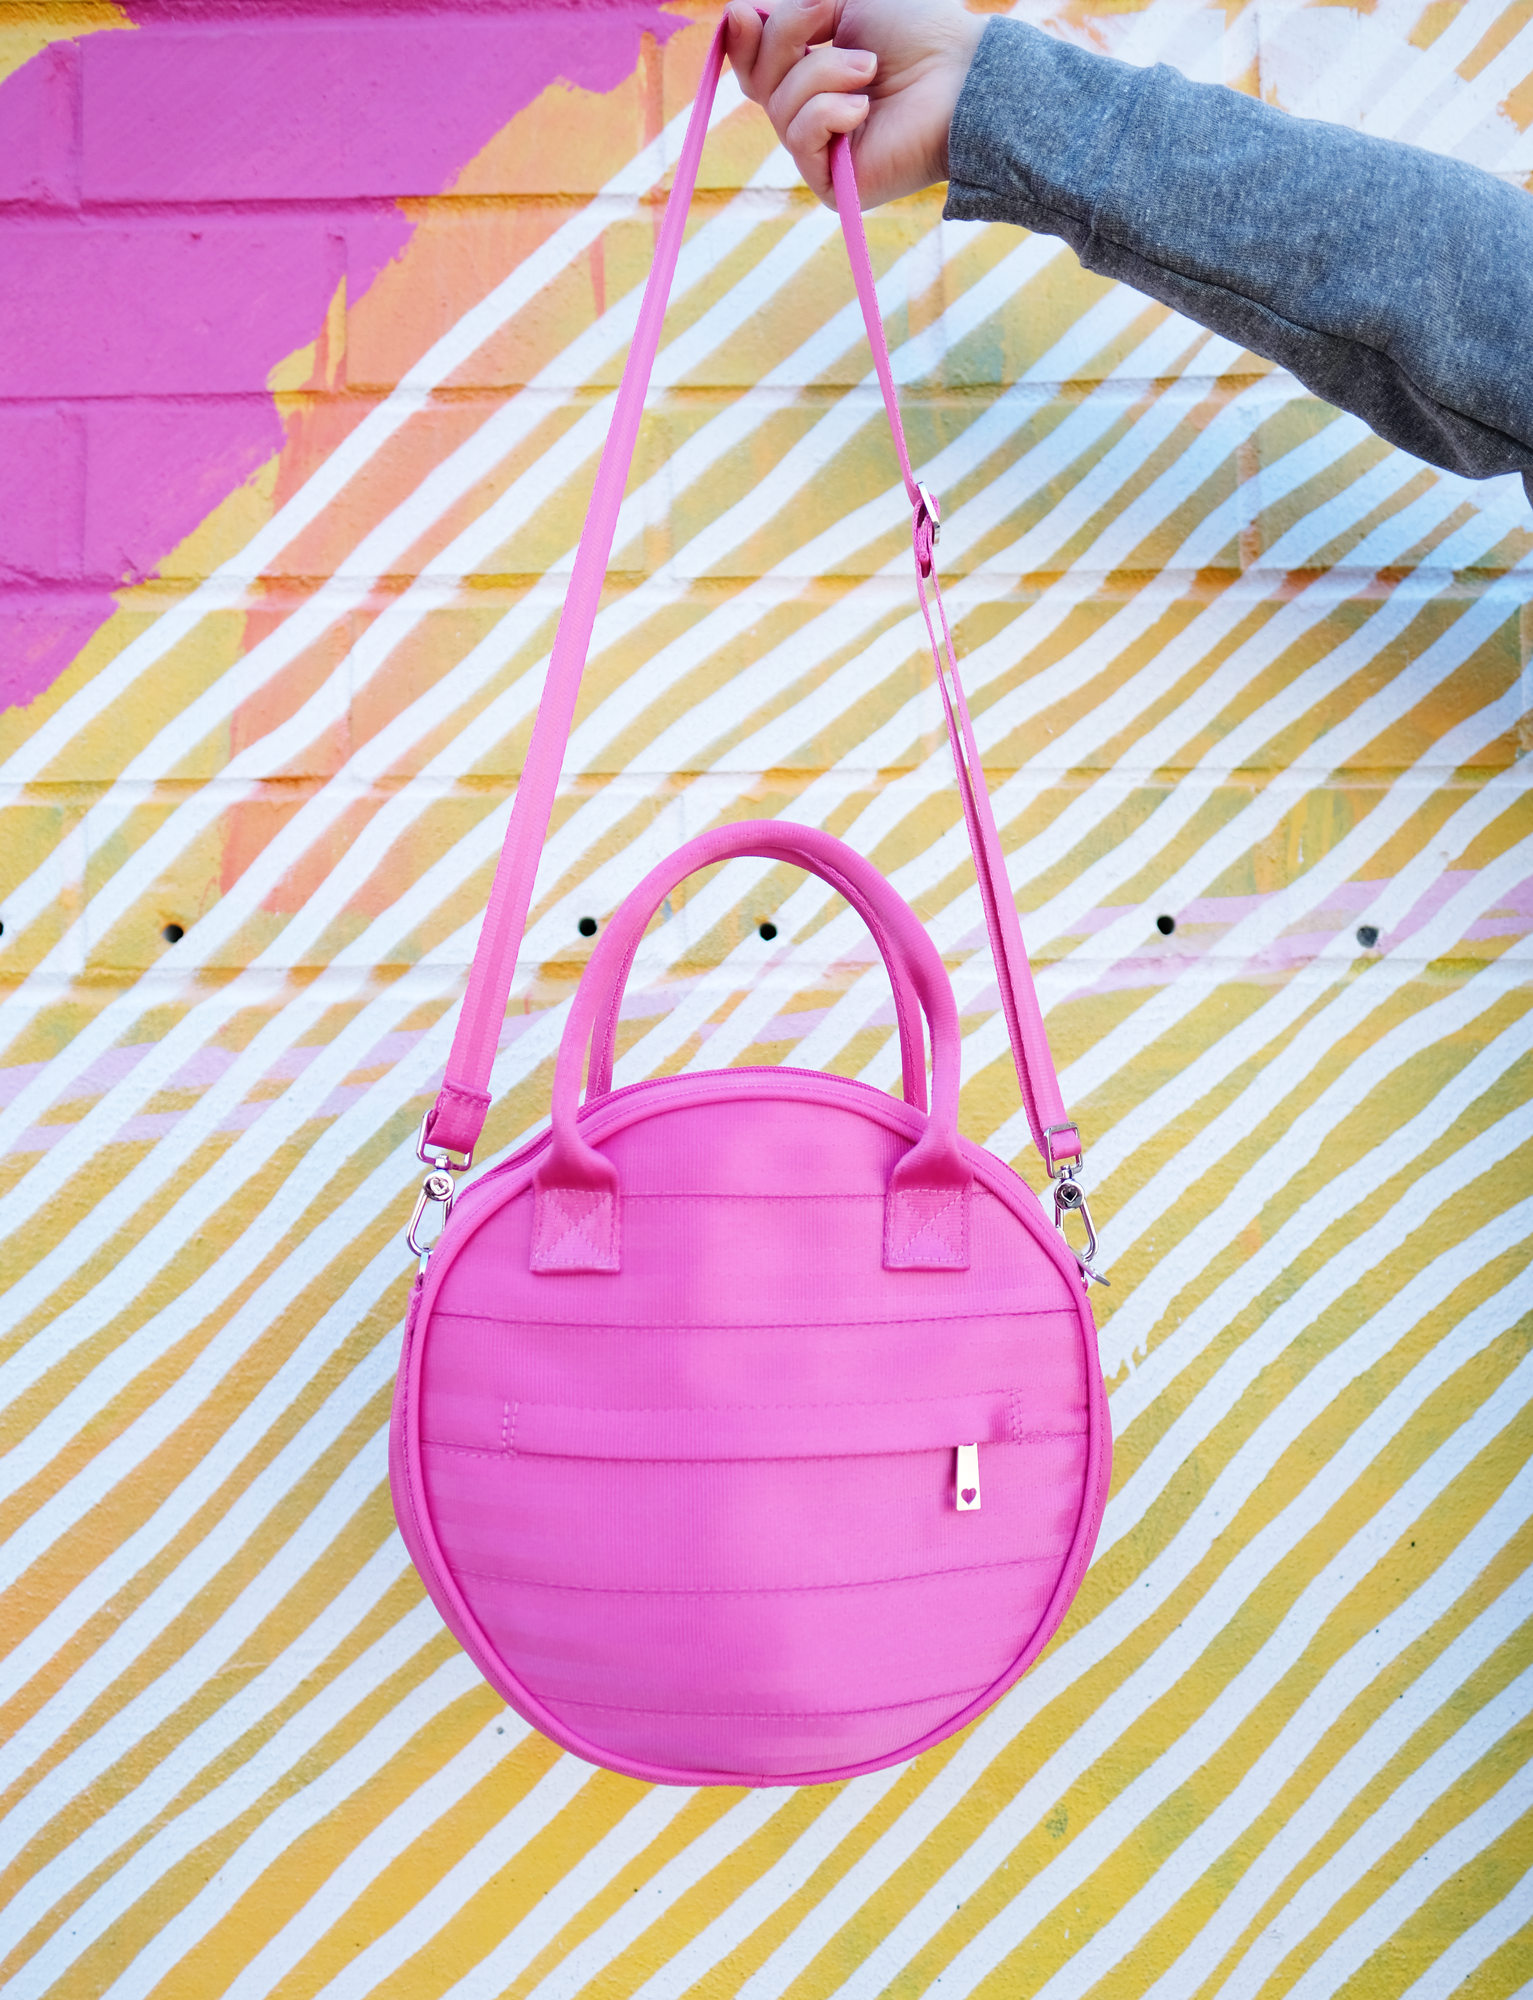 Harveys Pink Circle Bag